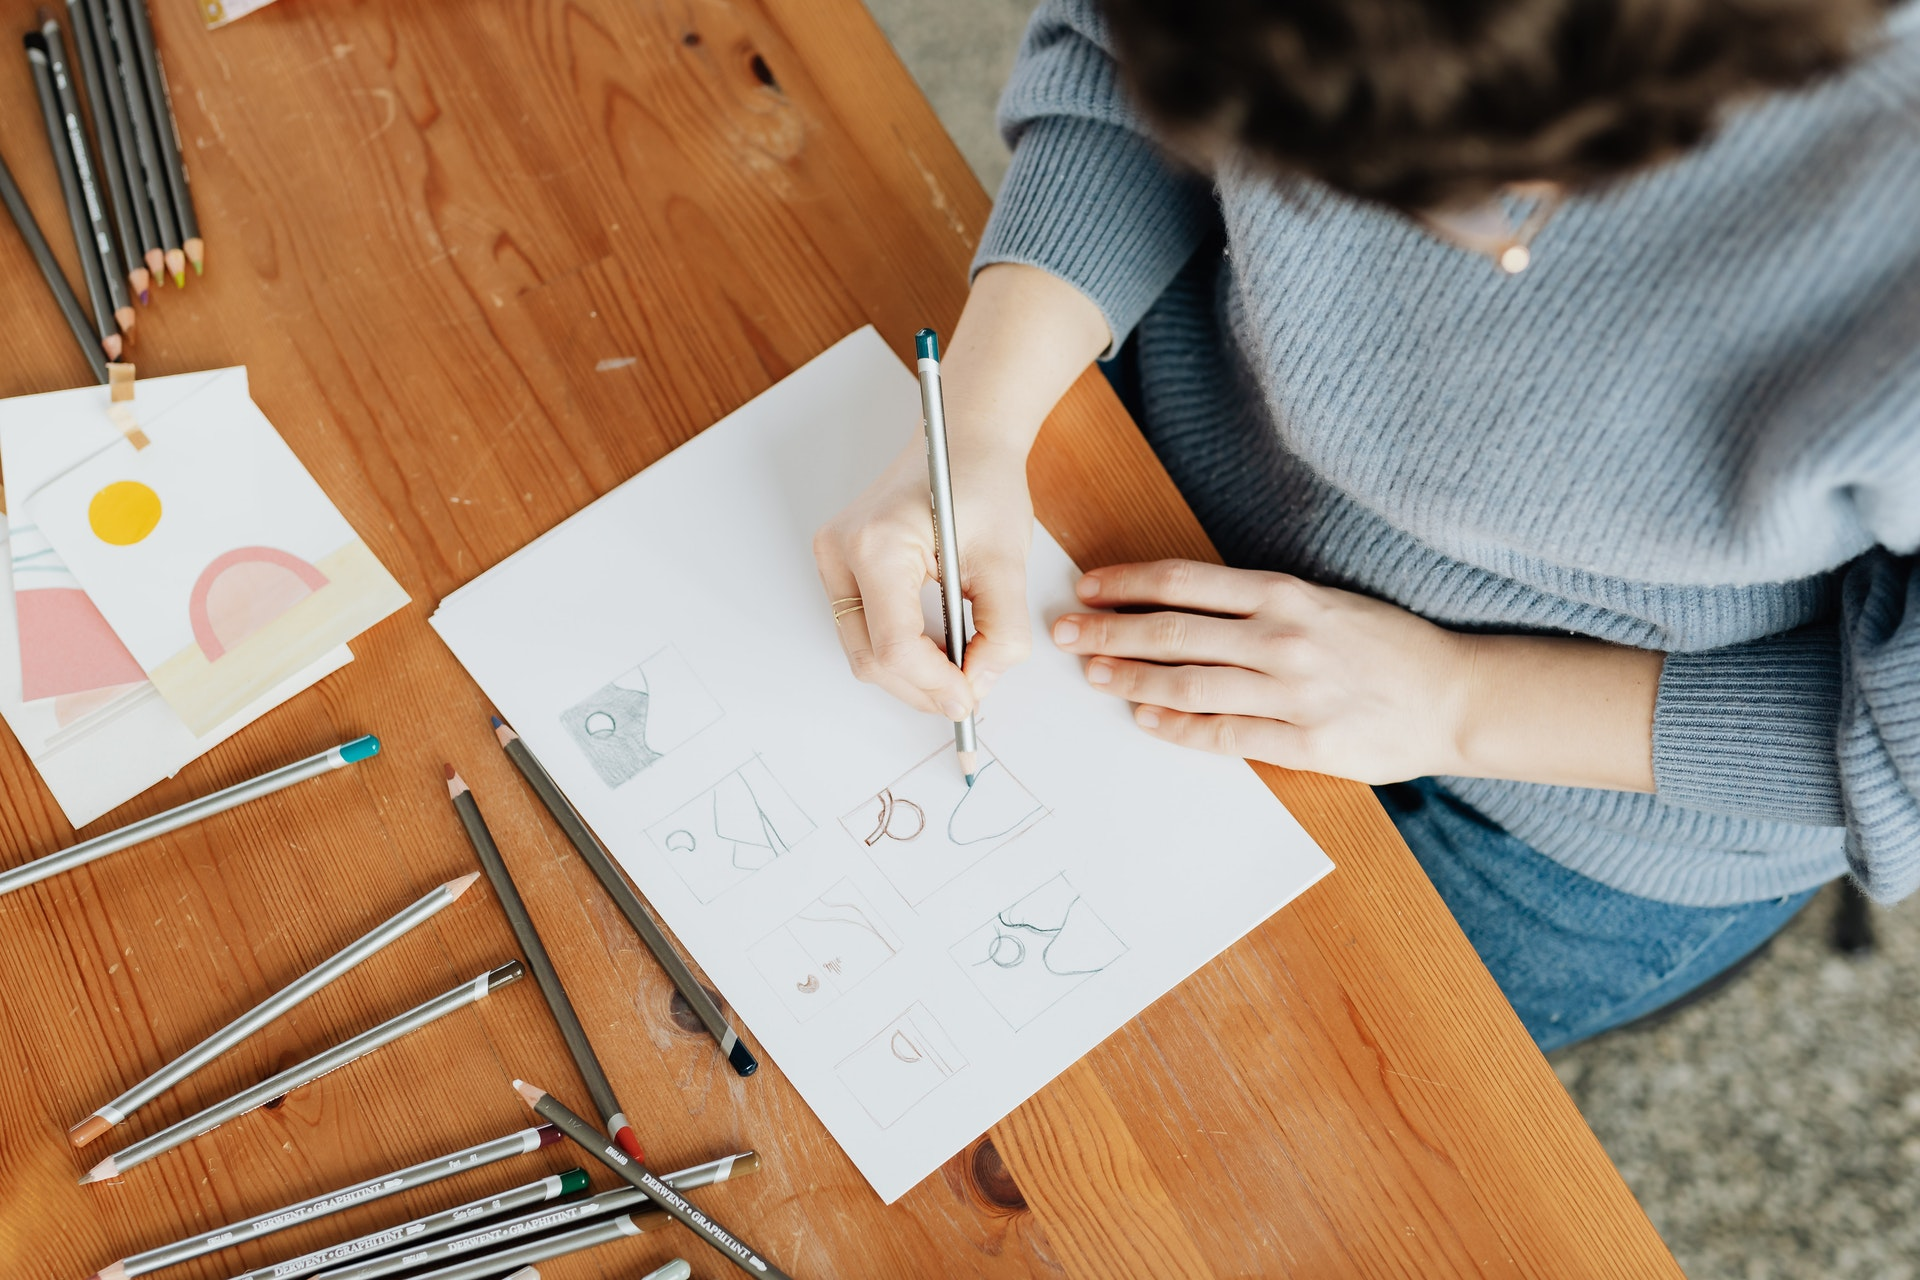 20 Easy Drawing Ideas That Will Inspire Daily Art 20   Kites ...